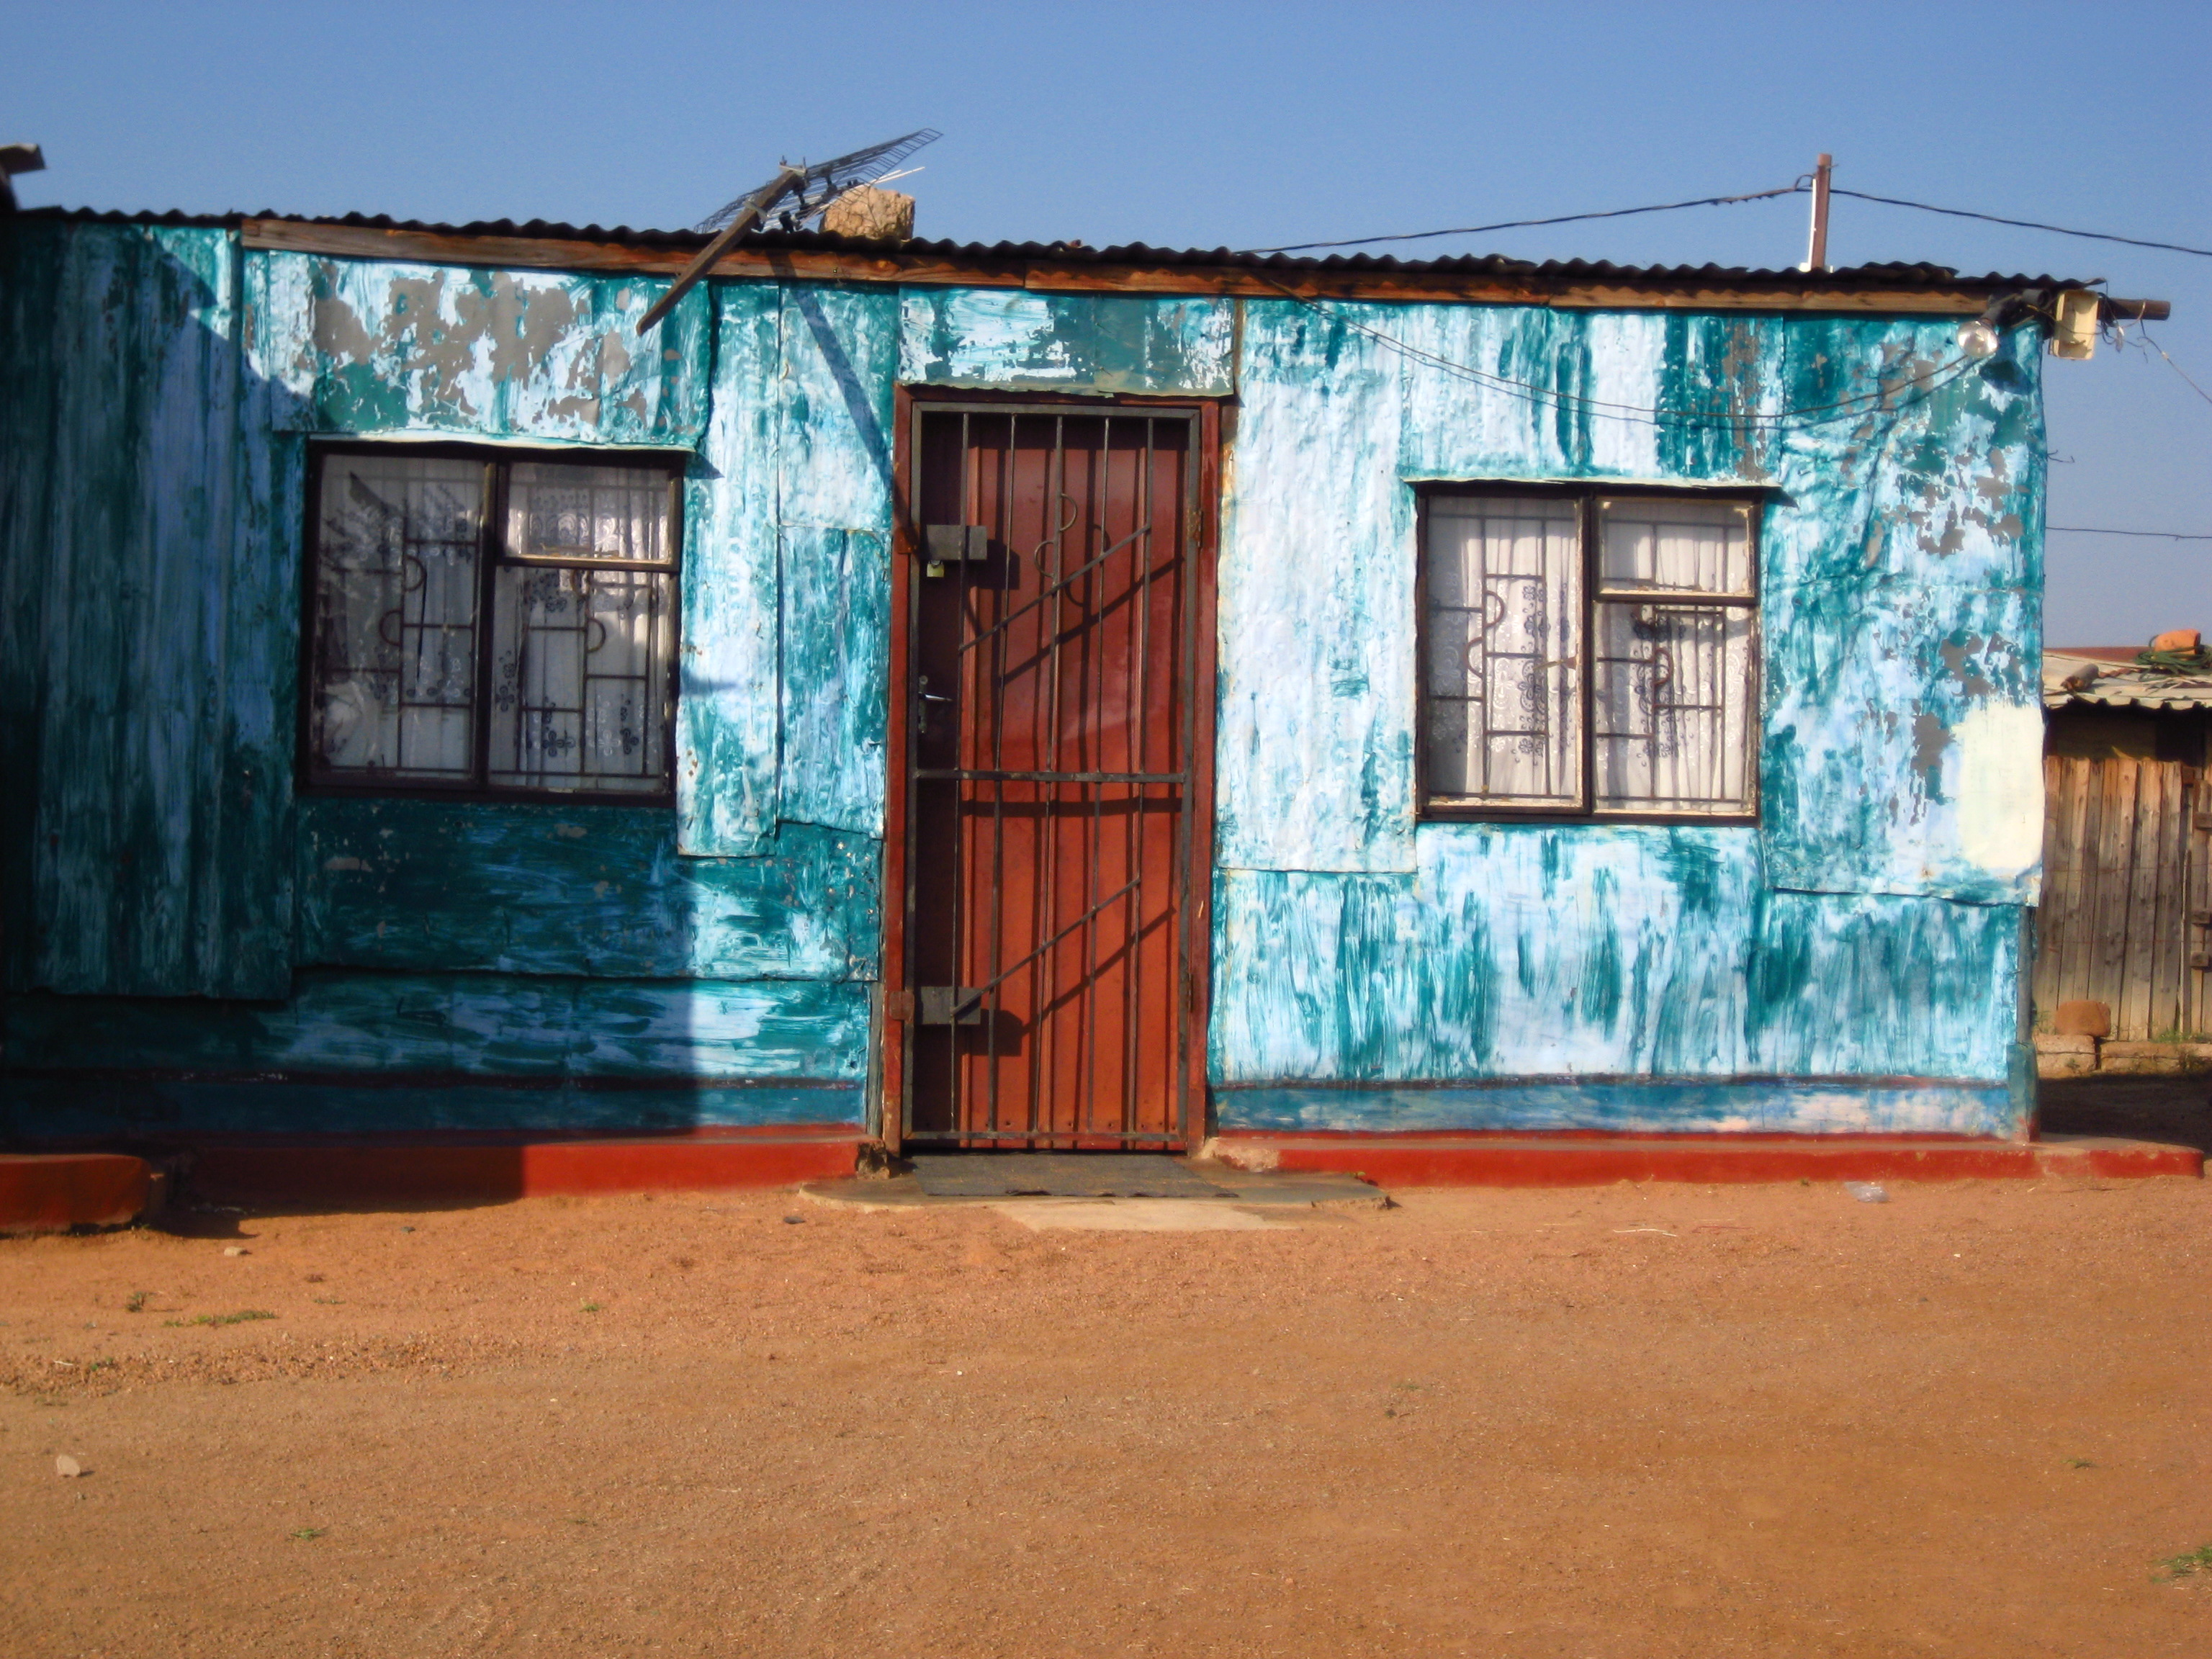 Shacks in Sosh exude character simply through their paint color.  Beauty personified.